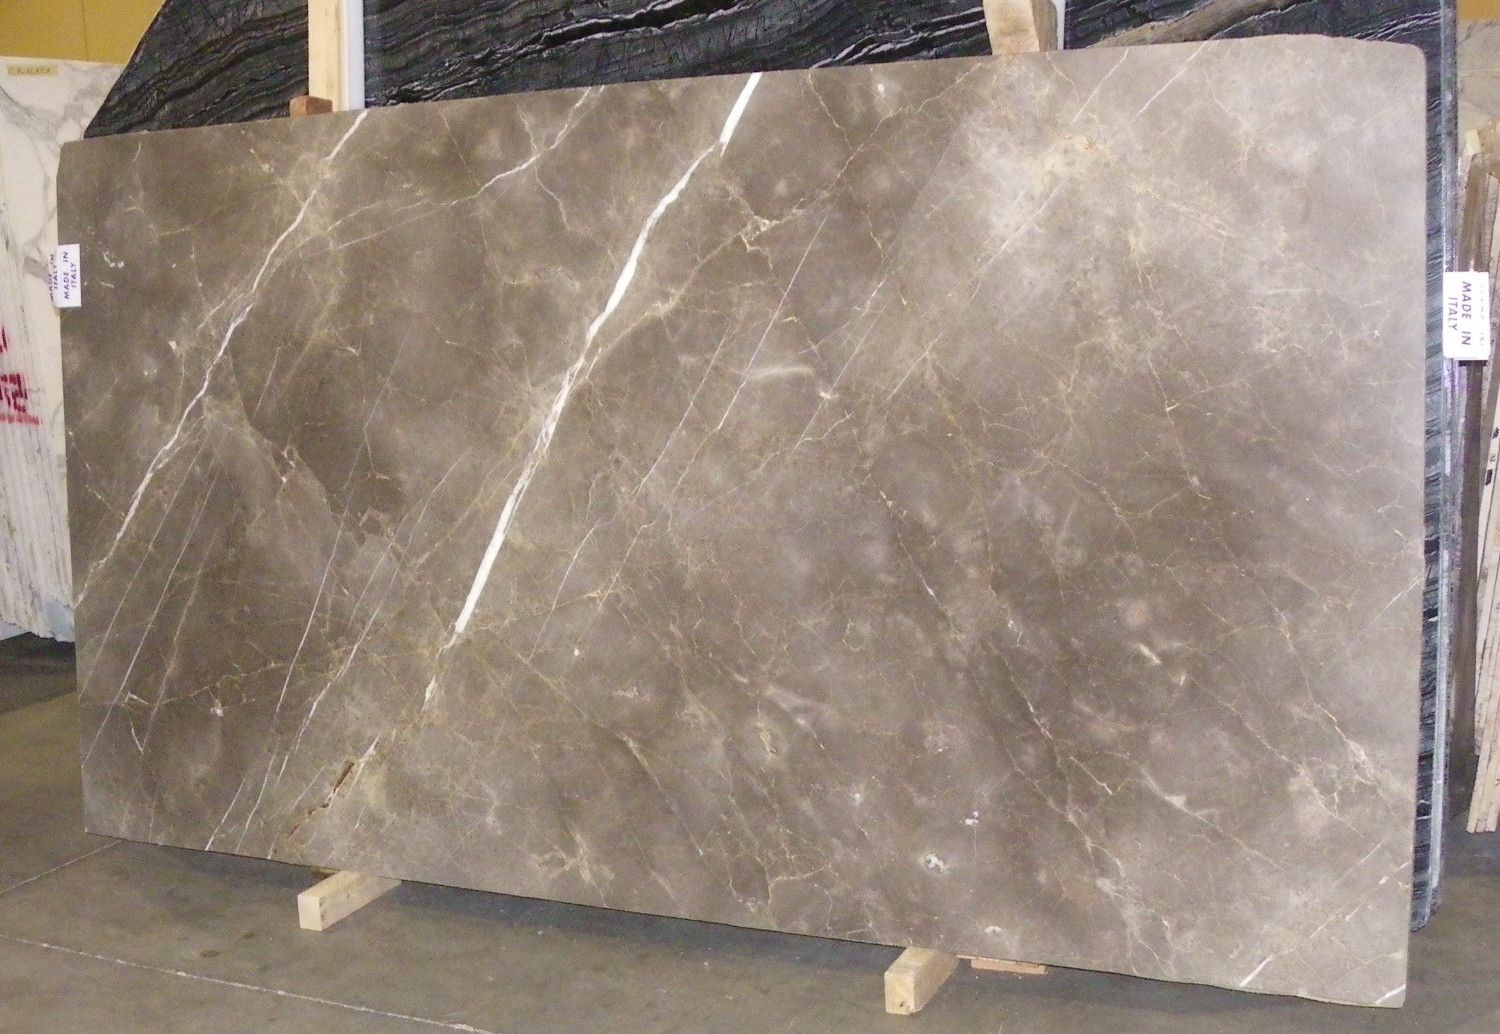 Pietra Imperiale Marble Sold By Milestone Marble Size 114 X 62 X 3 4 Inches Things To Sell Stone Slab House Exterior